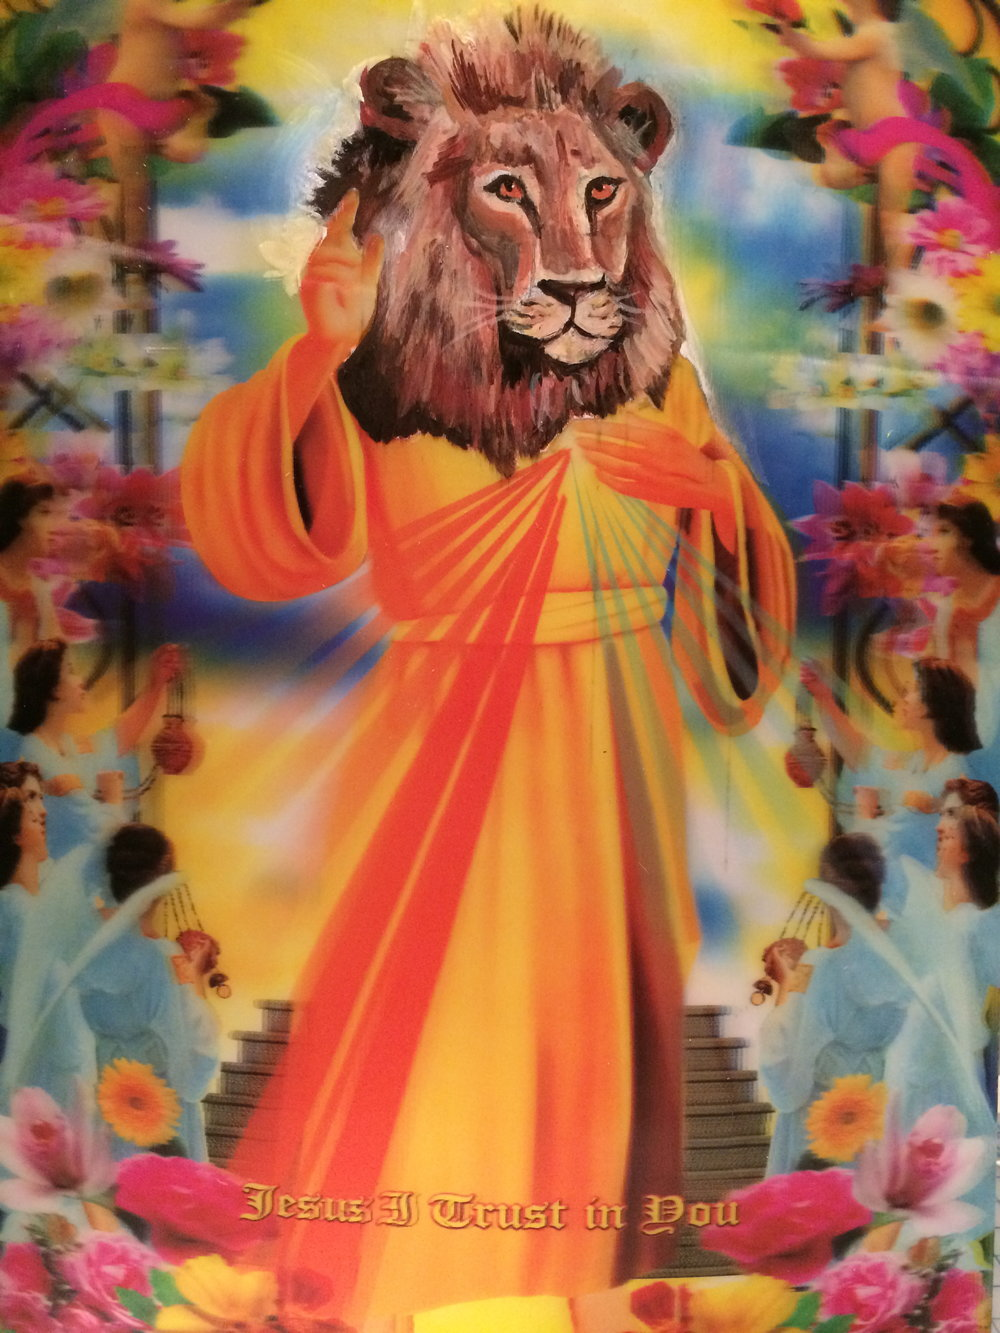 Cecil the Lion: Savior to the Endangered Species | acrylic on found lenticular | 9.5x13.5""